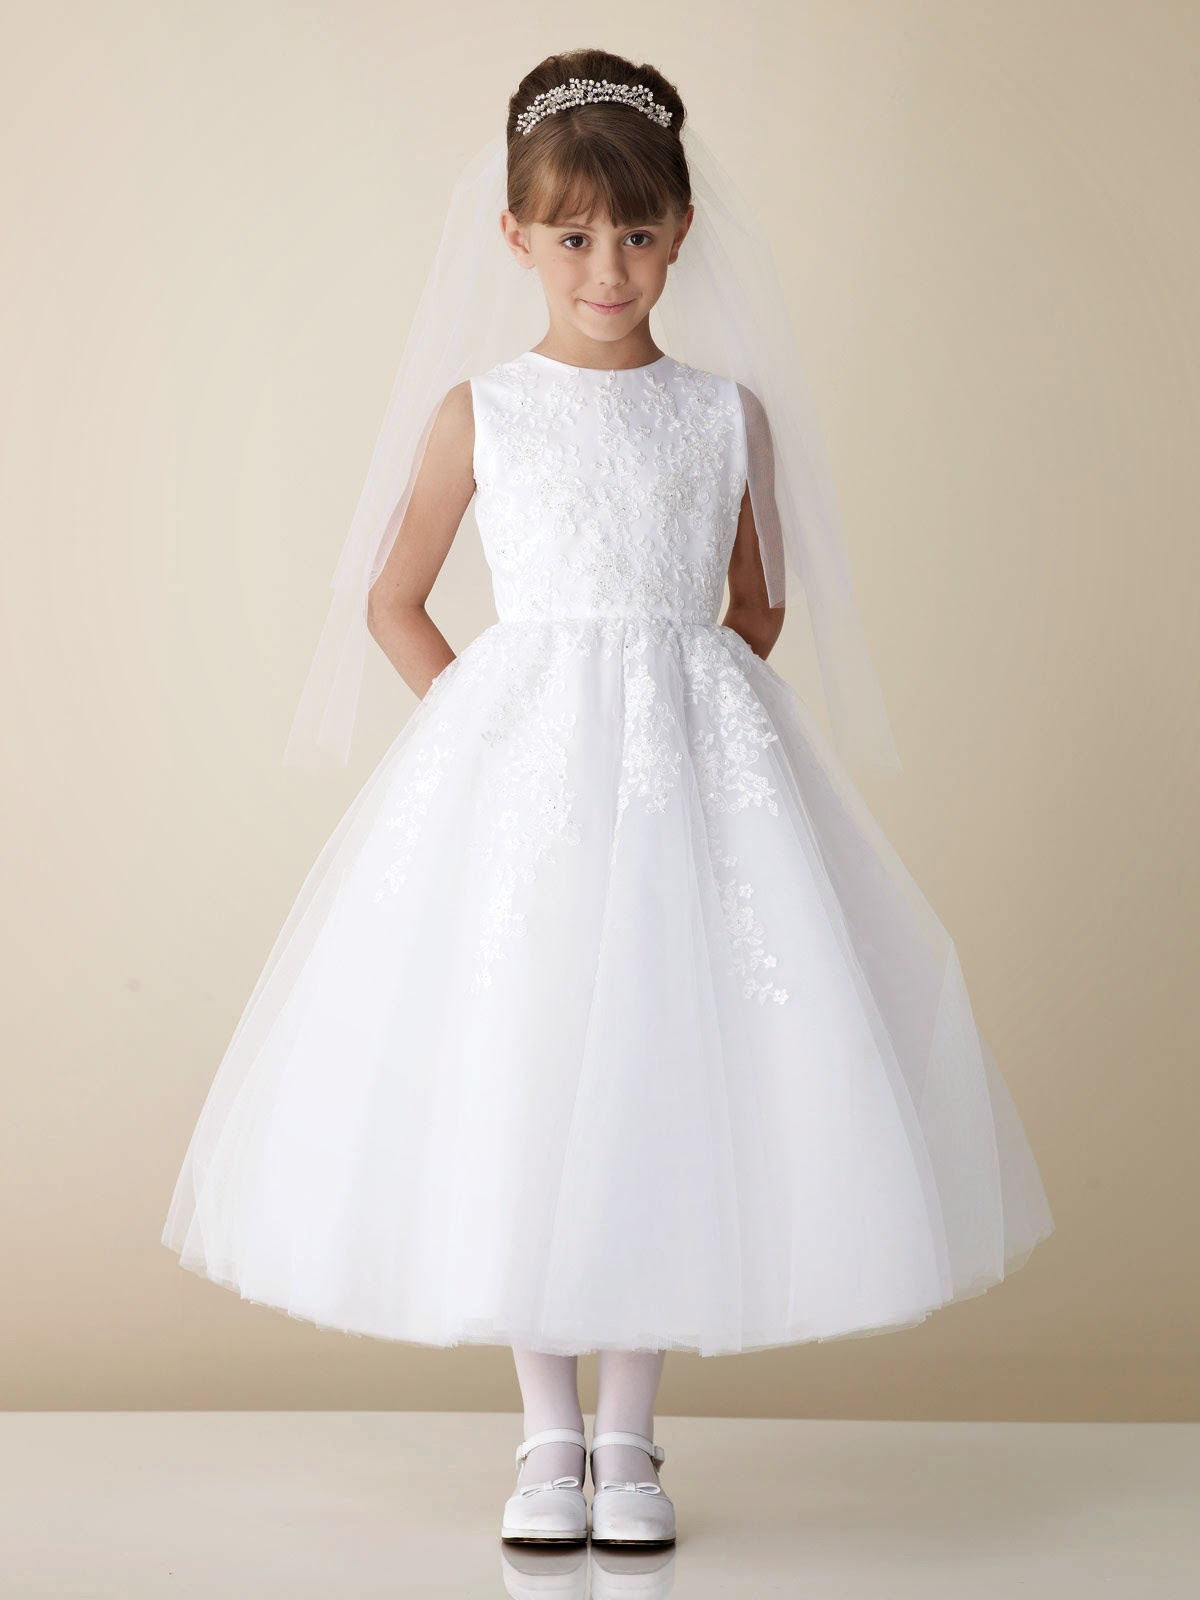 Irish Communion Dresses For Girls  Cocktail Dresses 2016